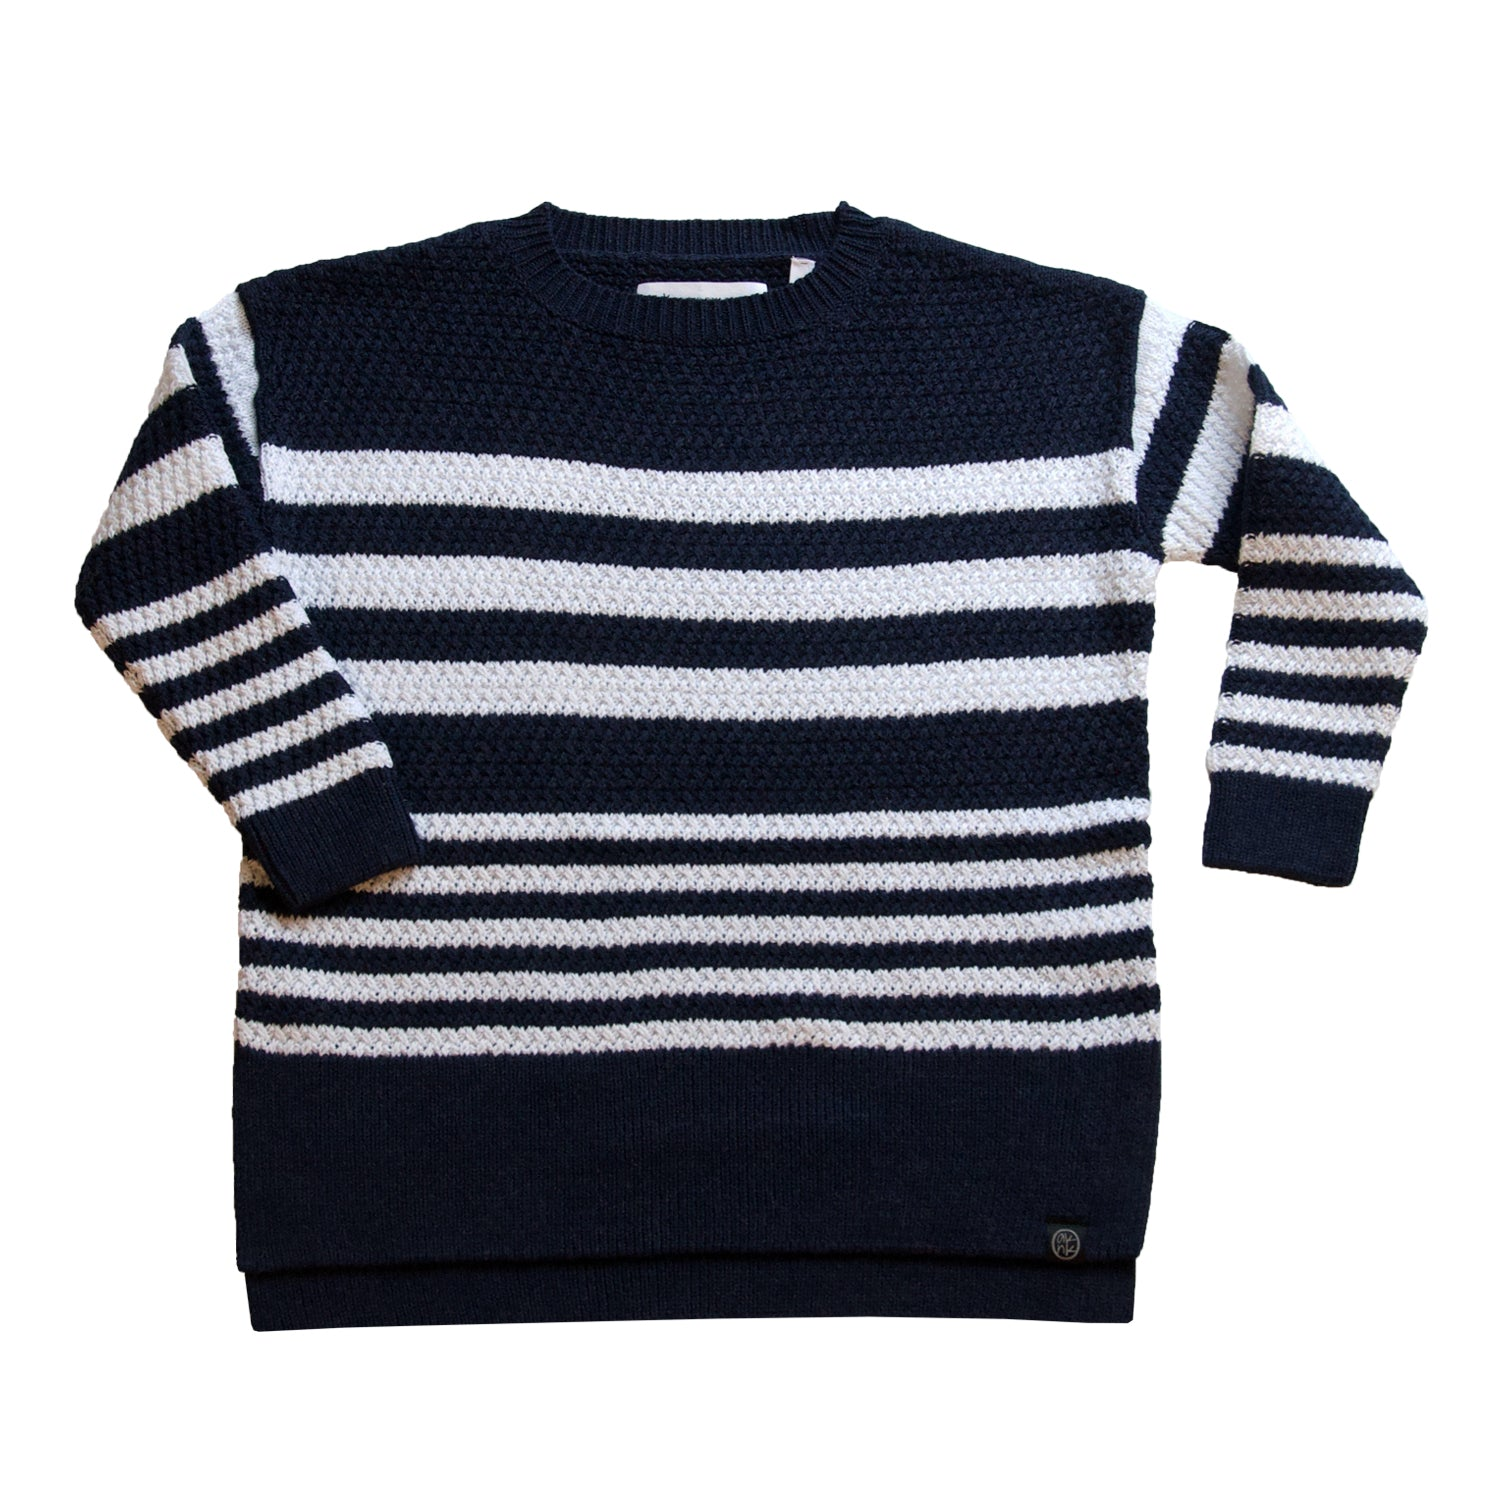 Dropped Shoulder Oversized Striped Sweater in Navy